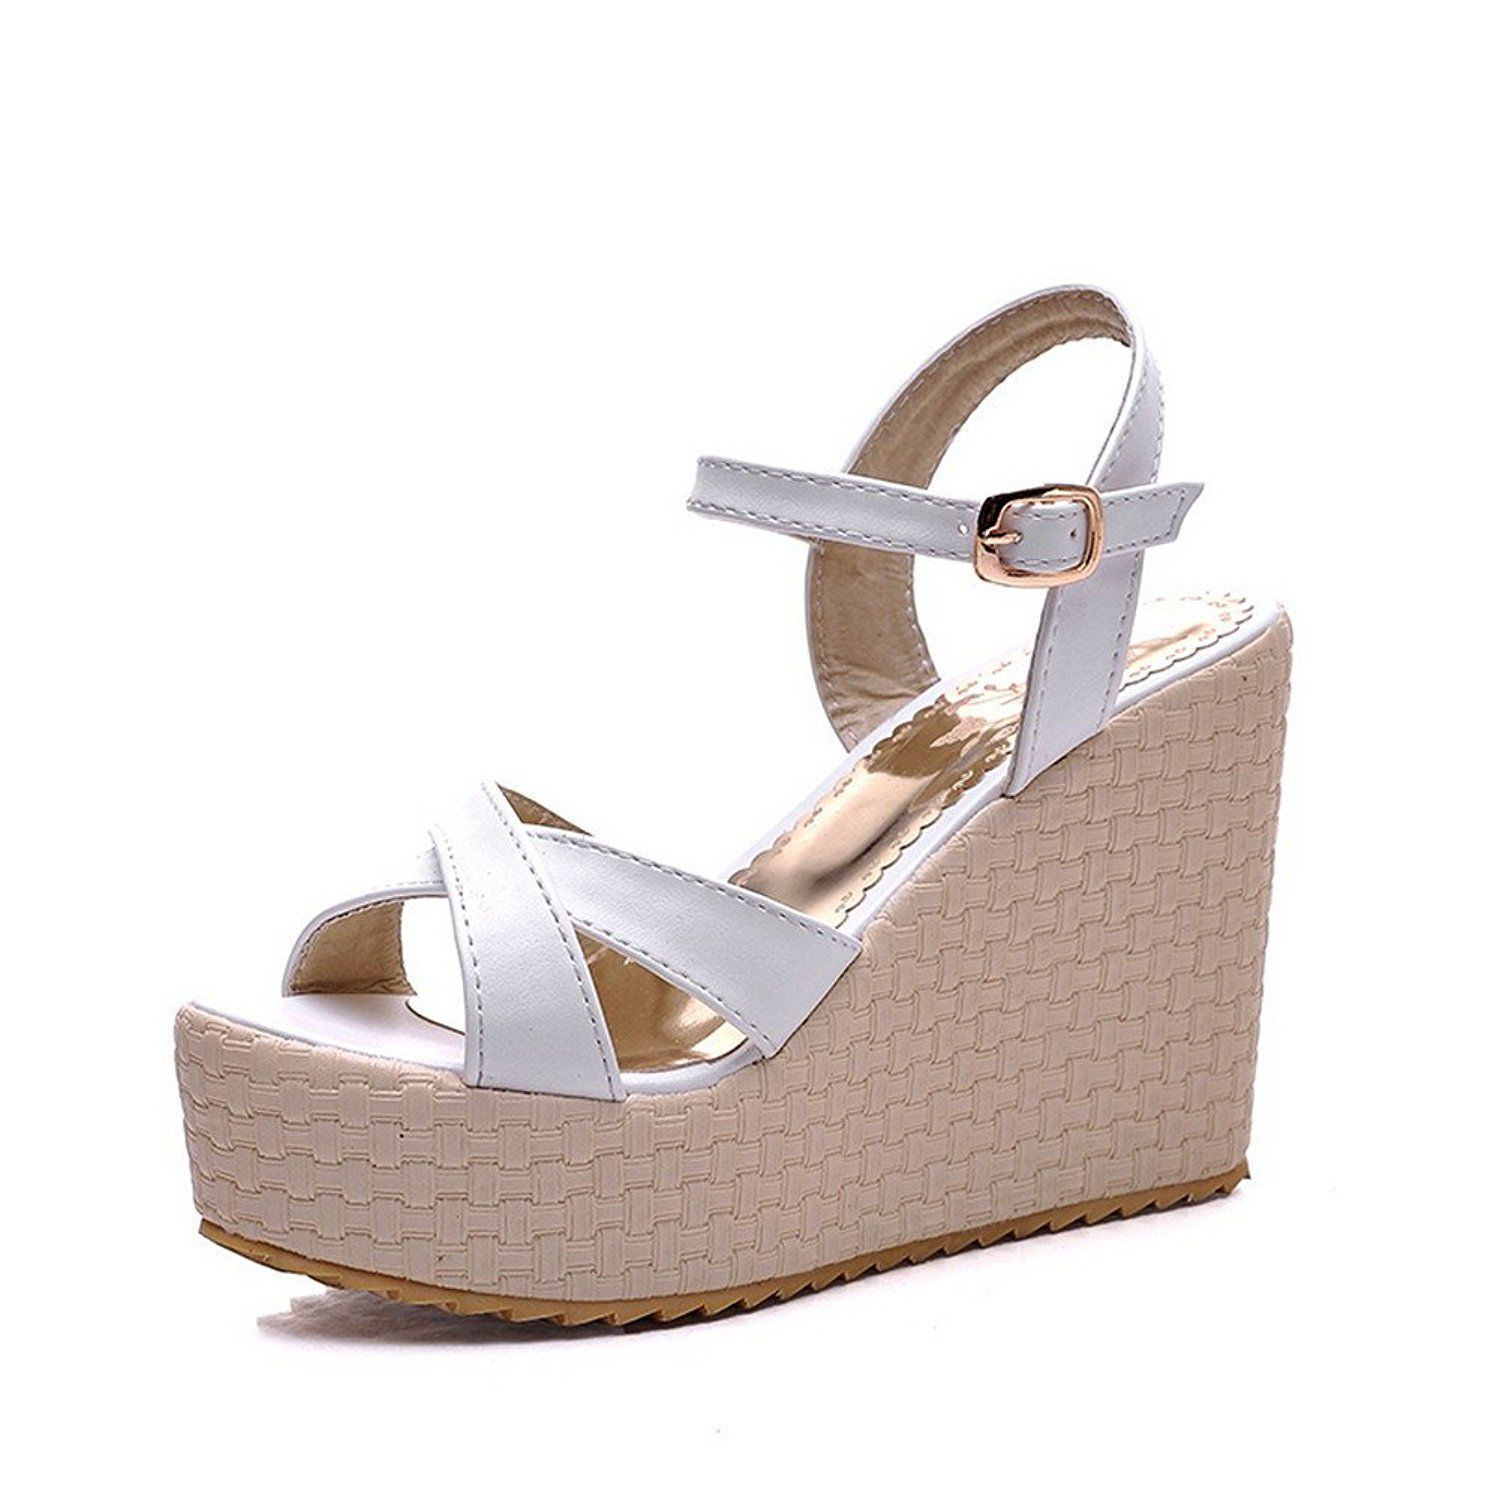 AmoonyFashion Girls Open Toe High Heel Wedge Platform Soft Material PU Solid Sandals ** Insider's special review you can't miss. Read more  : Girls sandals